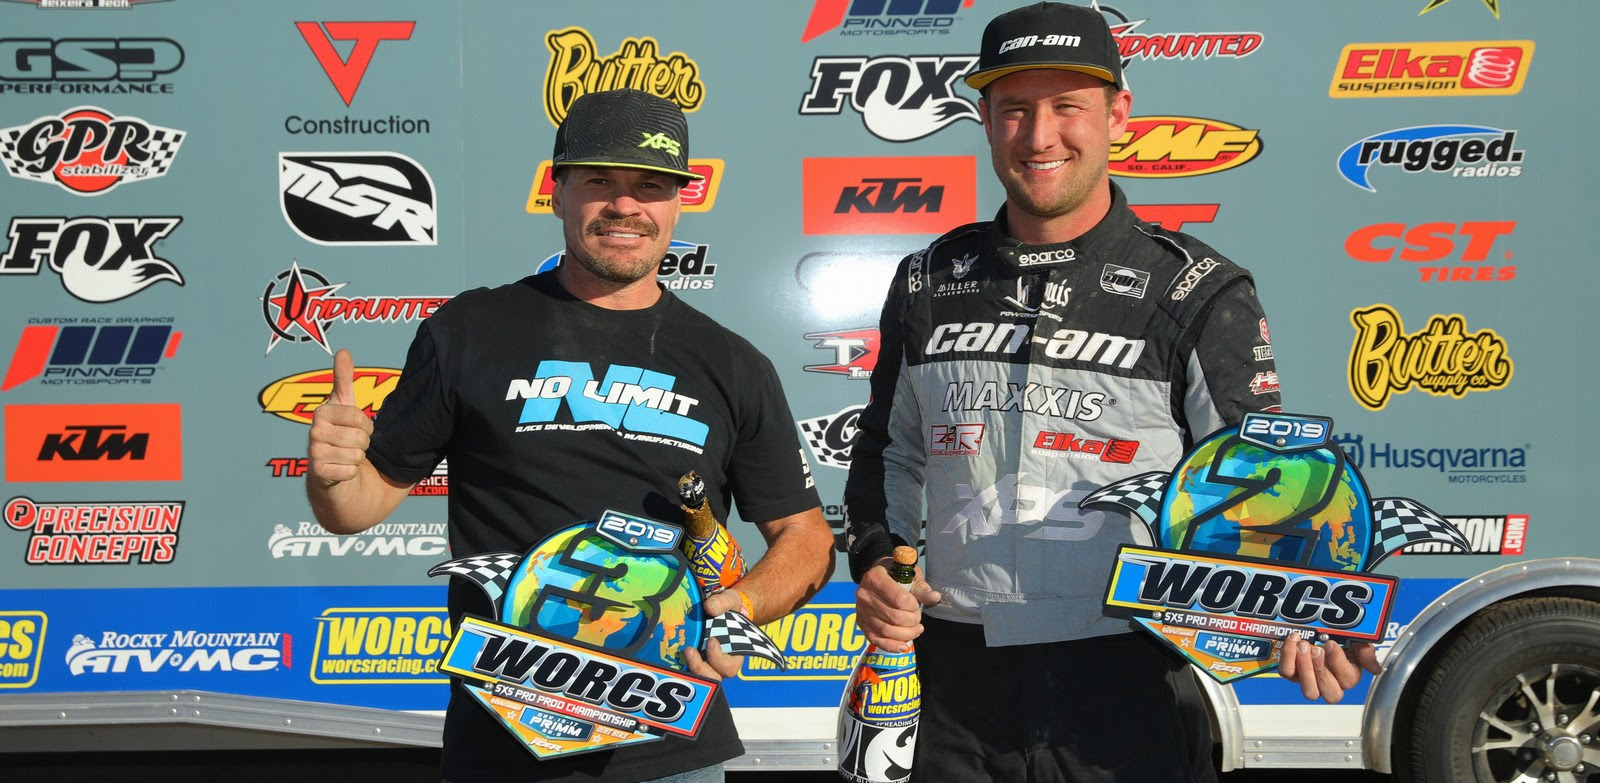 08-podium-production-sxs-pro-worcs-racing